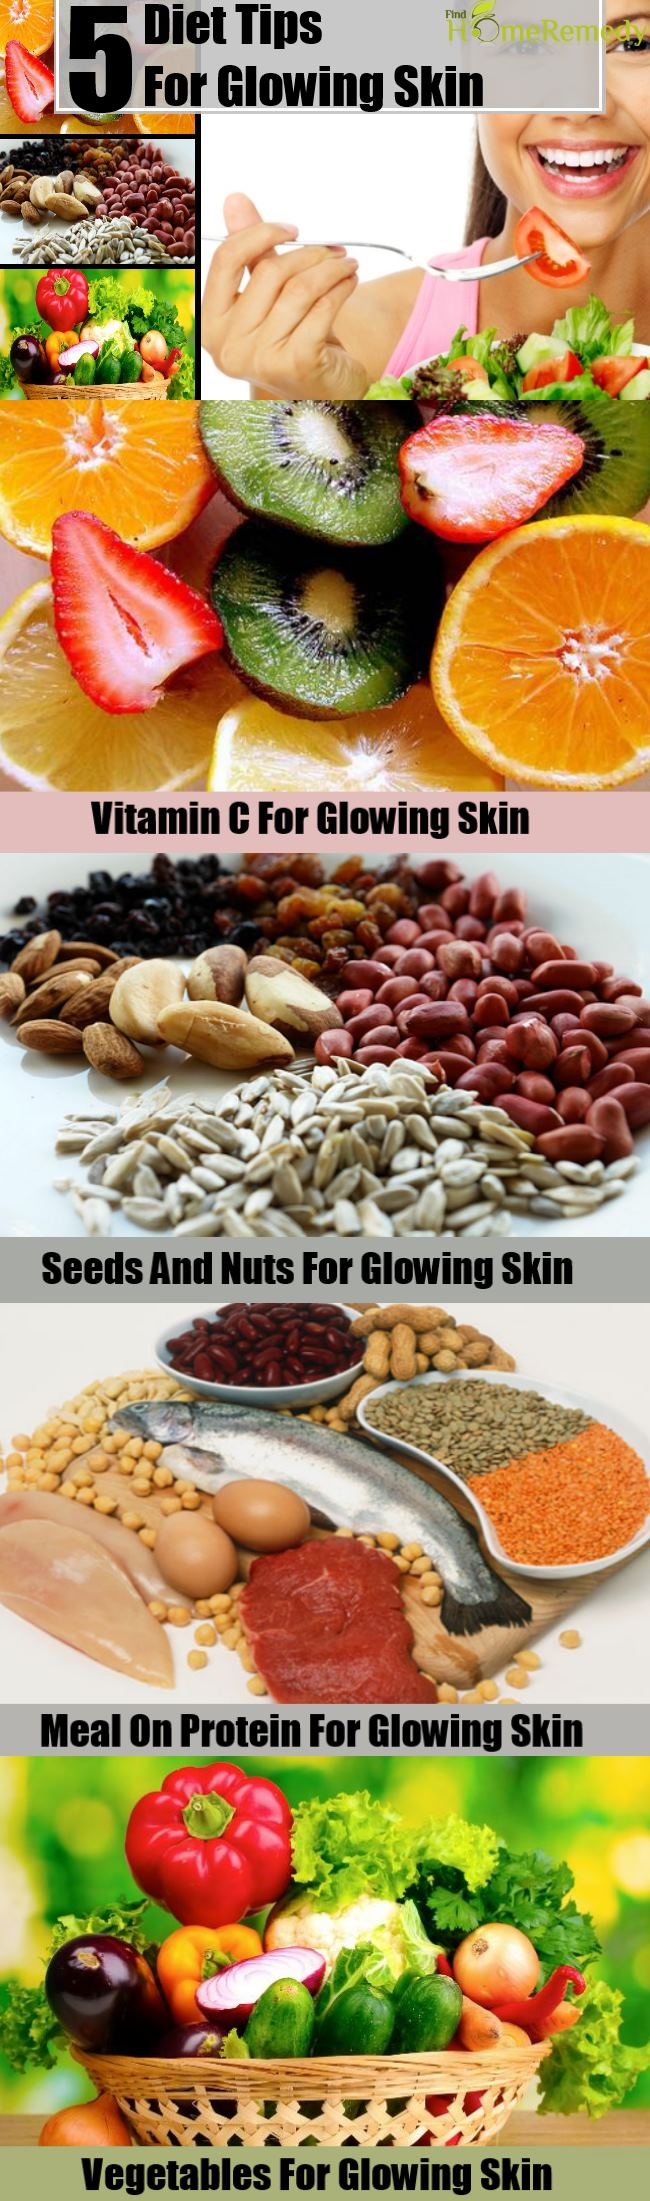 5 Diet Tips For Glowing Skin